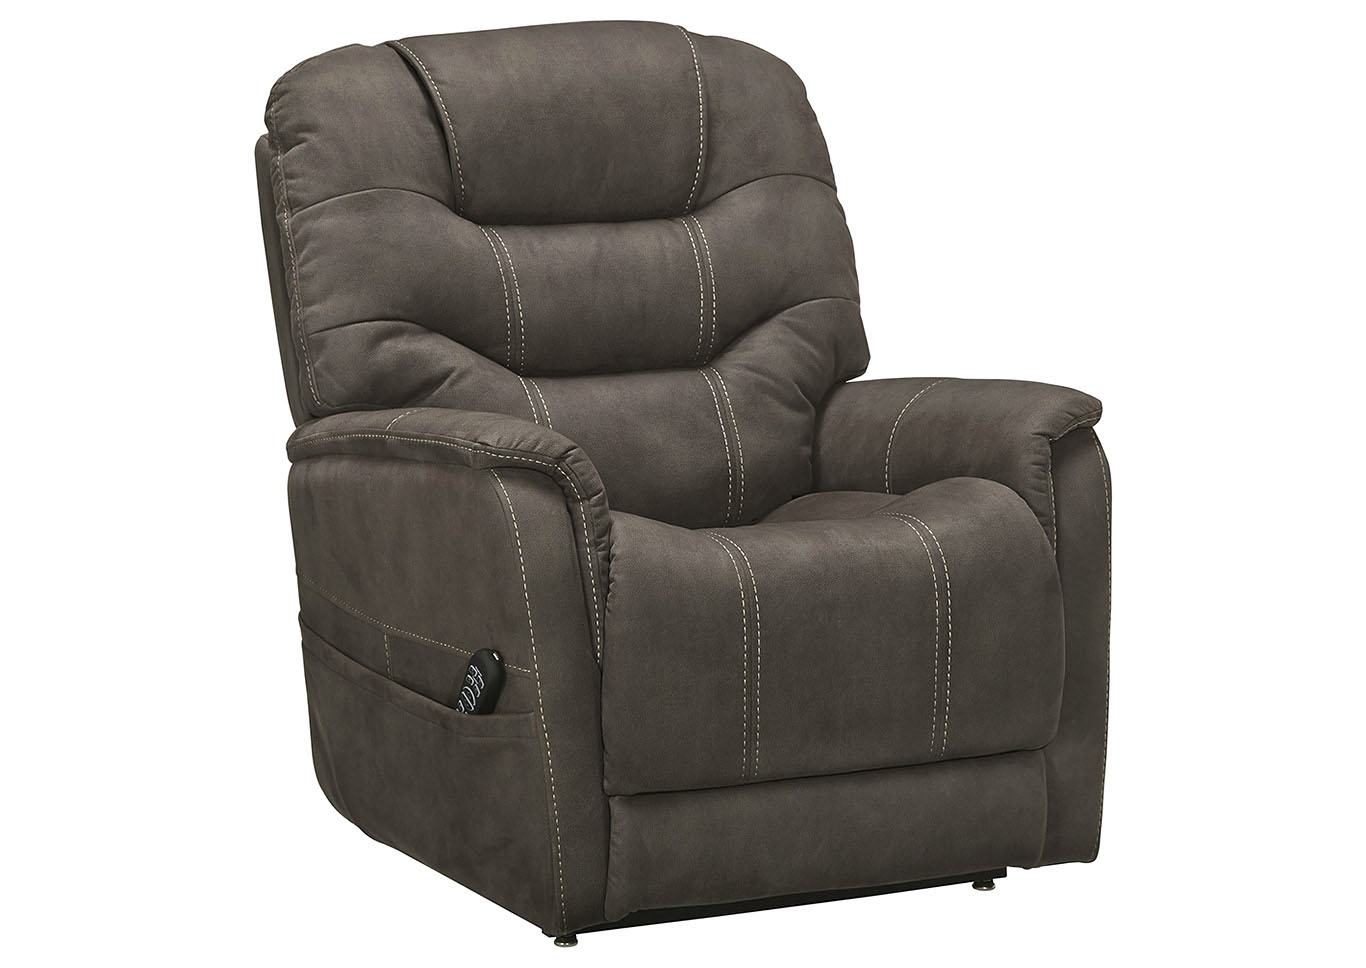 Ballister Gunmetal Power Lift Recliner,Signature Design By Ashley